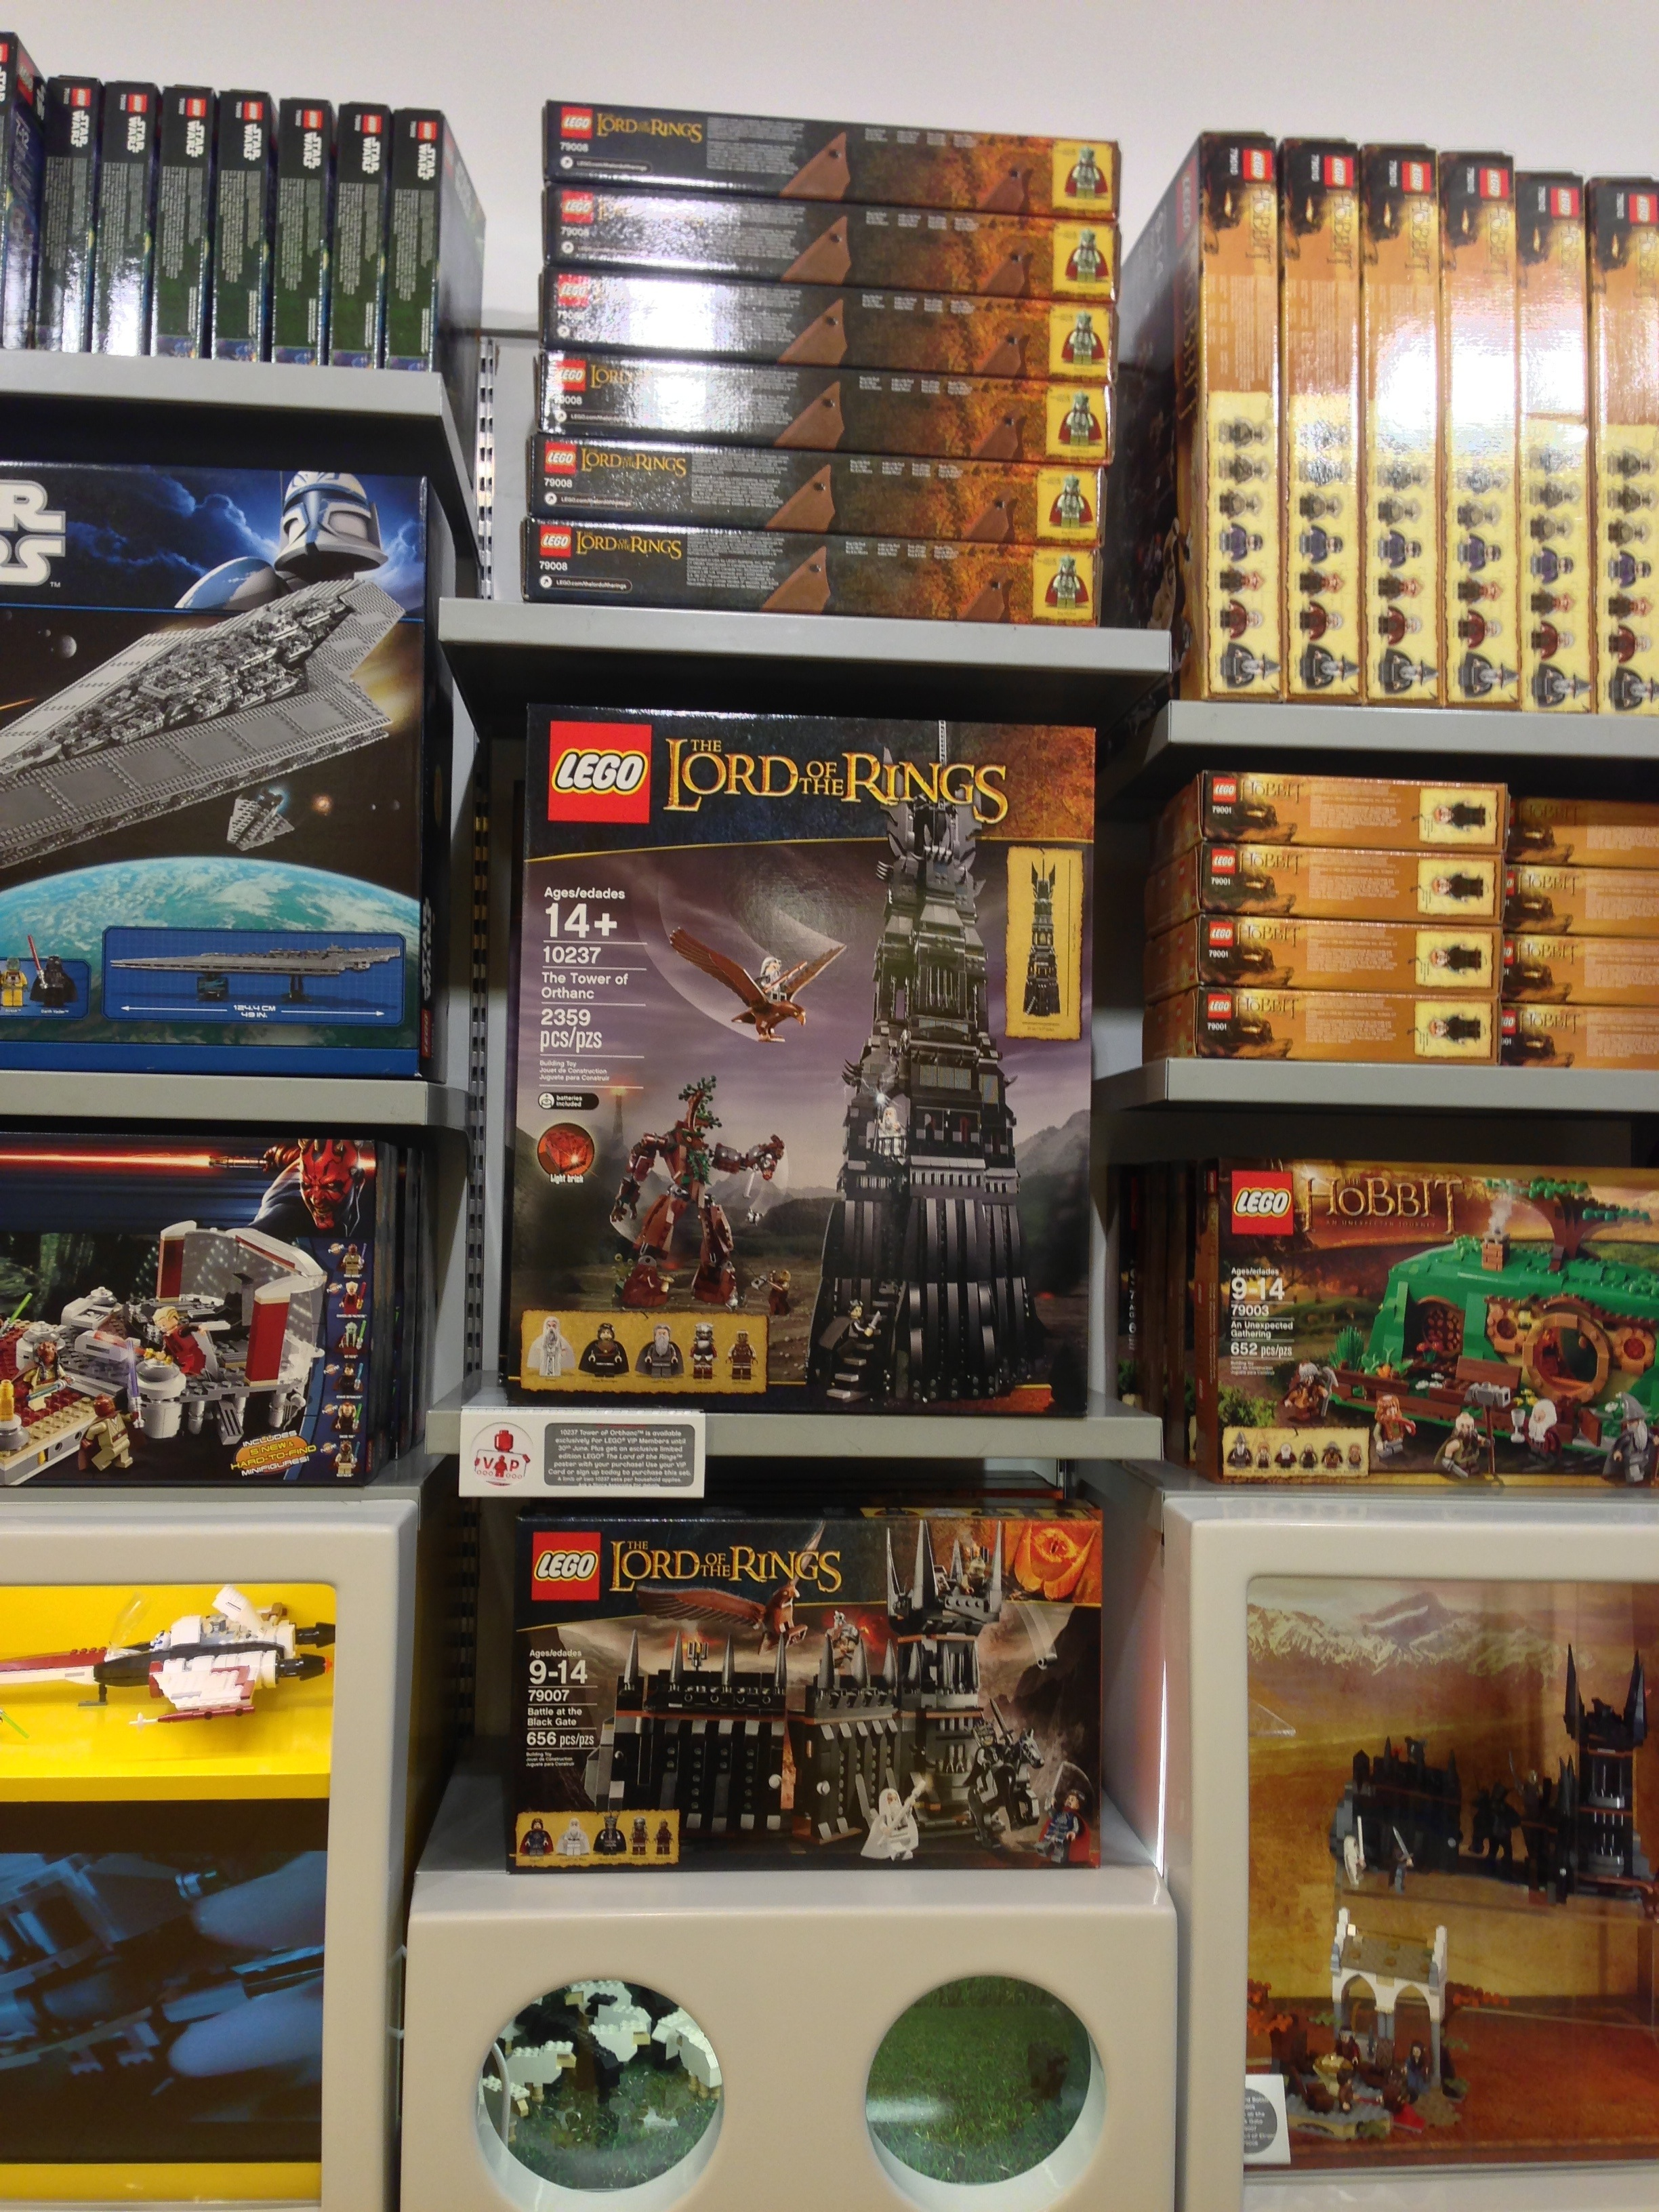 Lego Tower Of Orthanc 10237 Set Display Photos At The Store Lord Rings Battle Black Gate 79007 Summer 2013 Sets